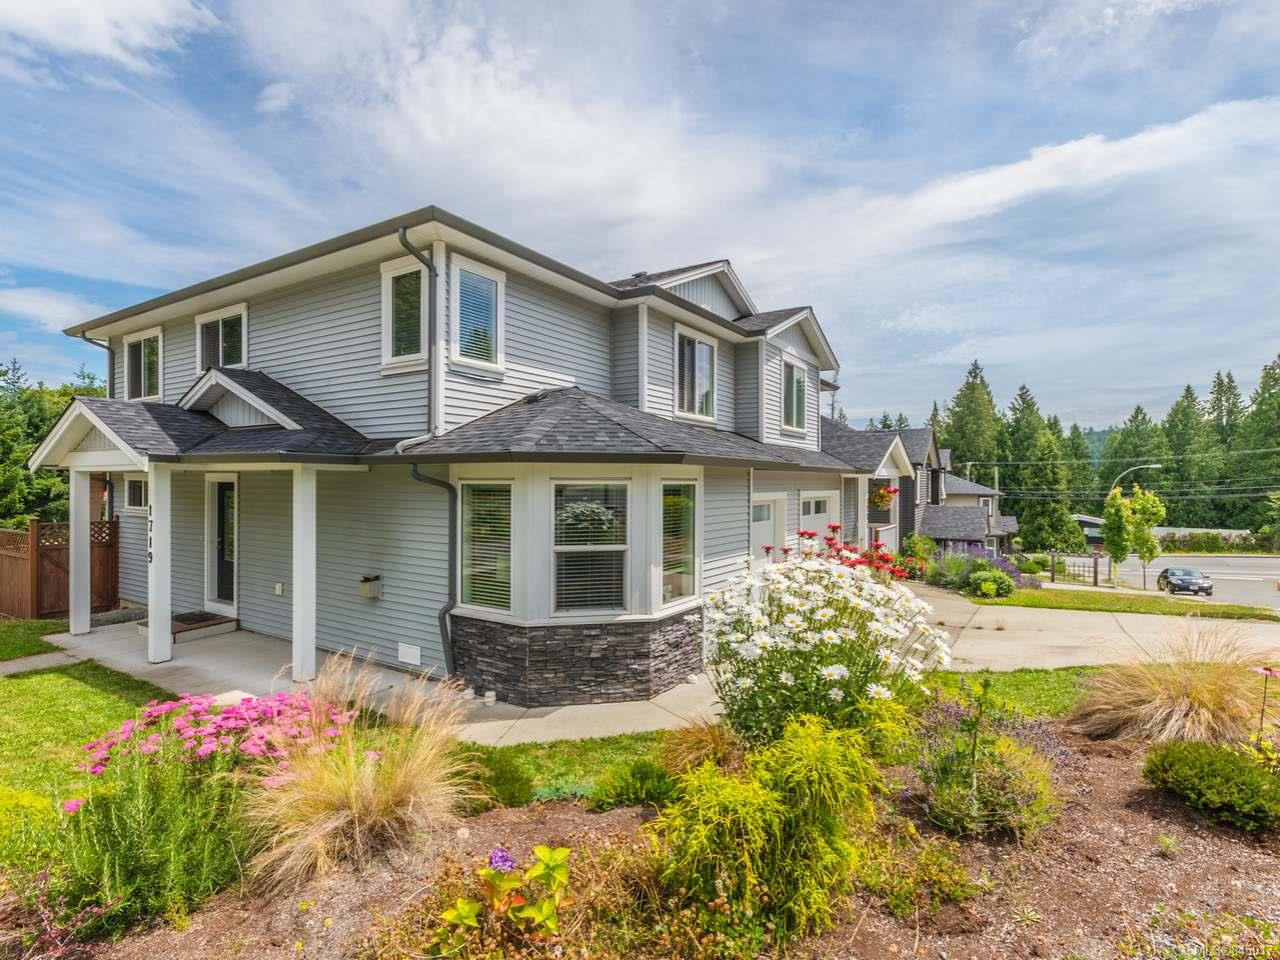 FEATURED LISTING: 1719 Trevors Rd NANAIMO